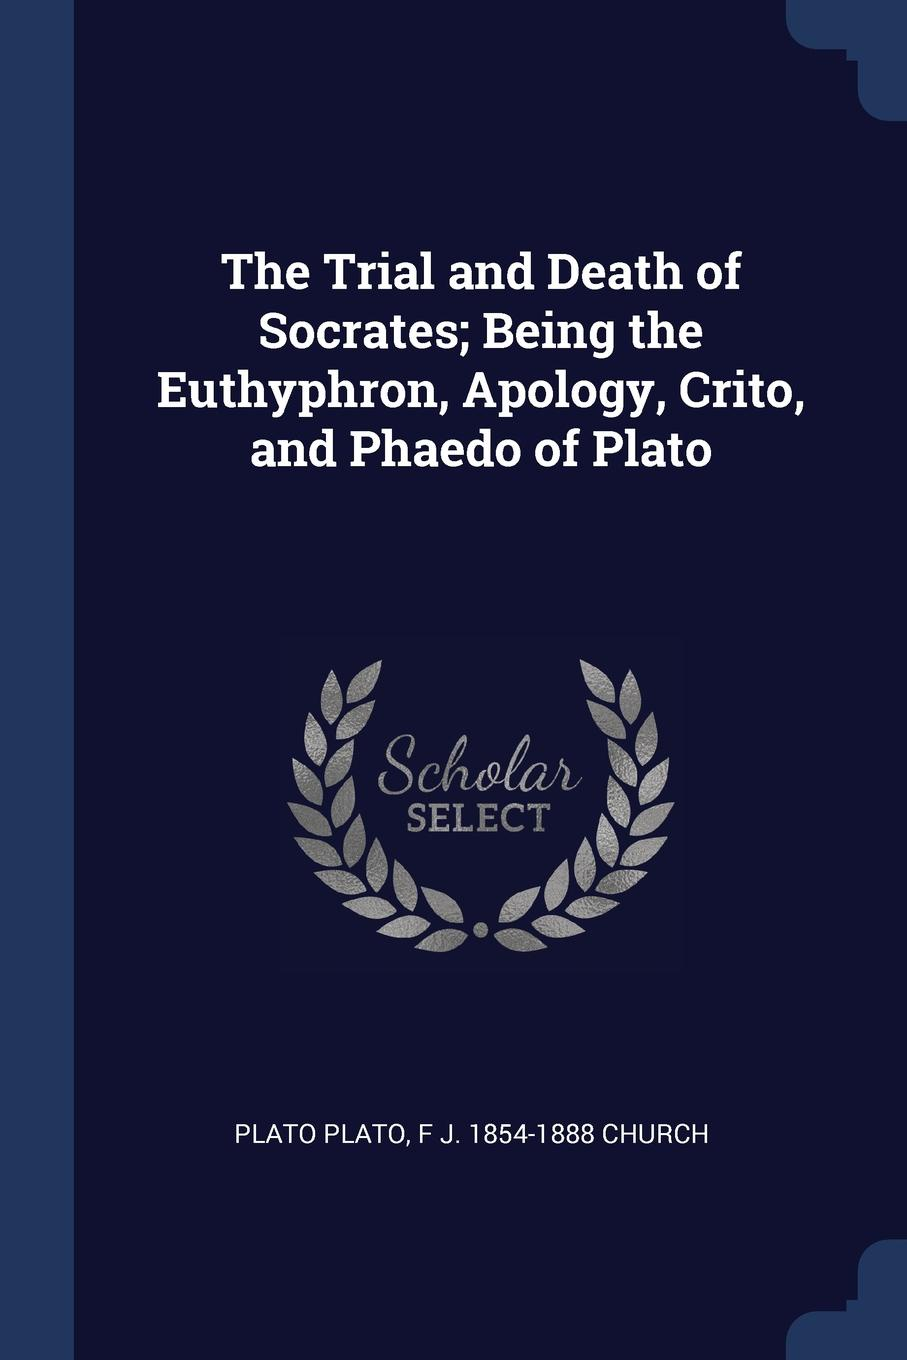 The Trial and Death of Socrates; Being the Euthyphron, Apology, Crito, and Phaedo of Plato. Plato Plato, F J. 1854-1888 Church